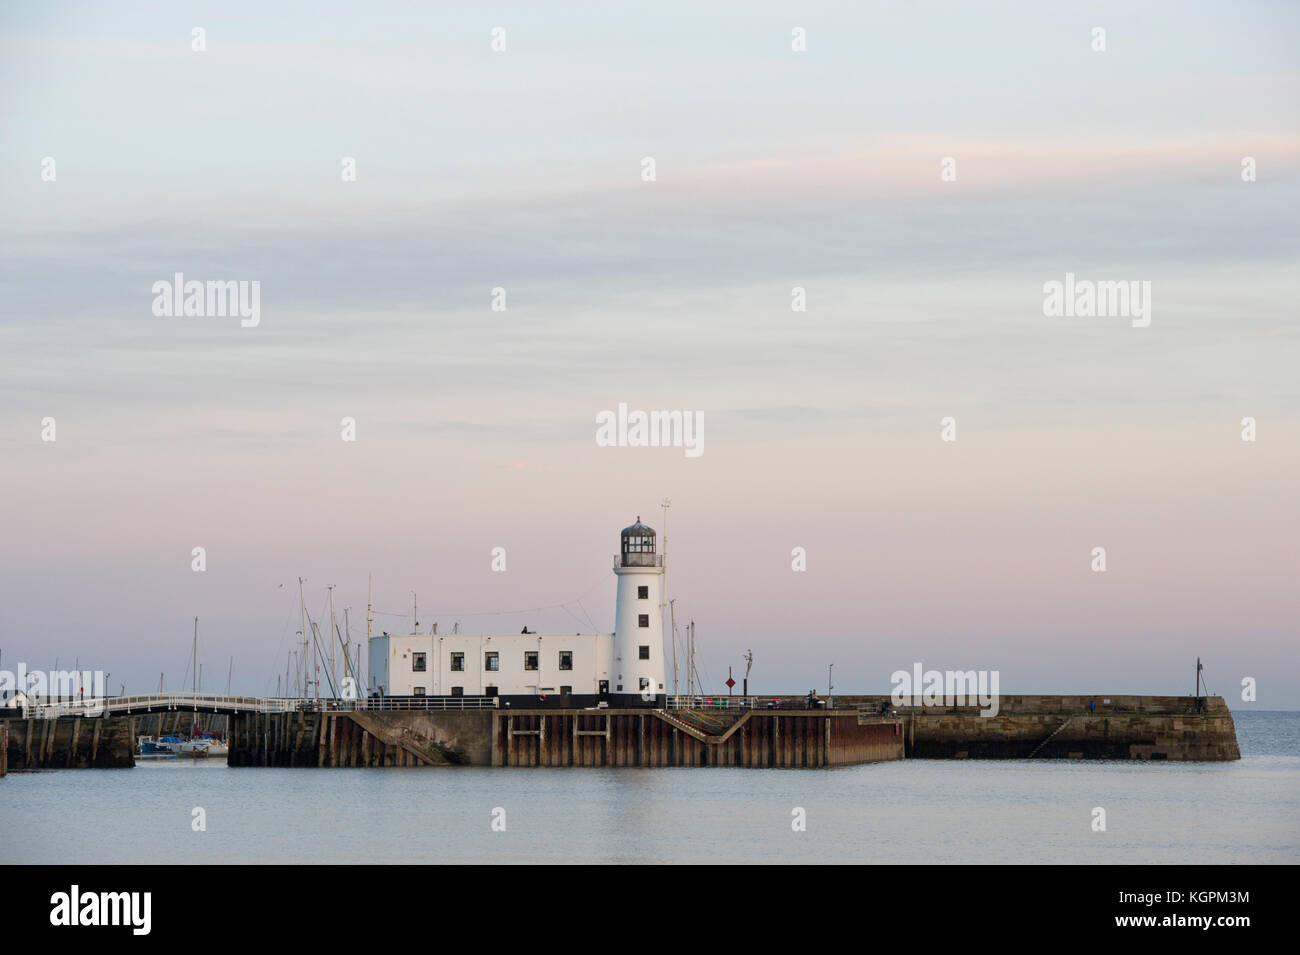 Scarborough Harbour and Lighthouse during an Autumn sunset on the North Yorkshire seaside town. - Stock Image